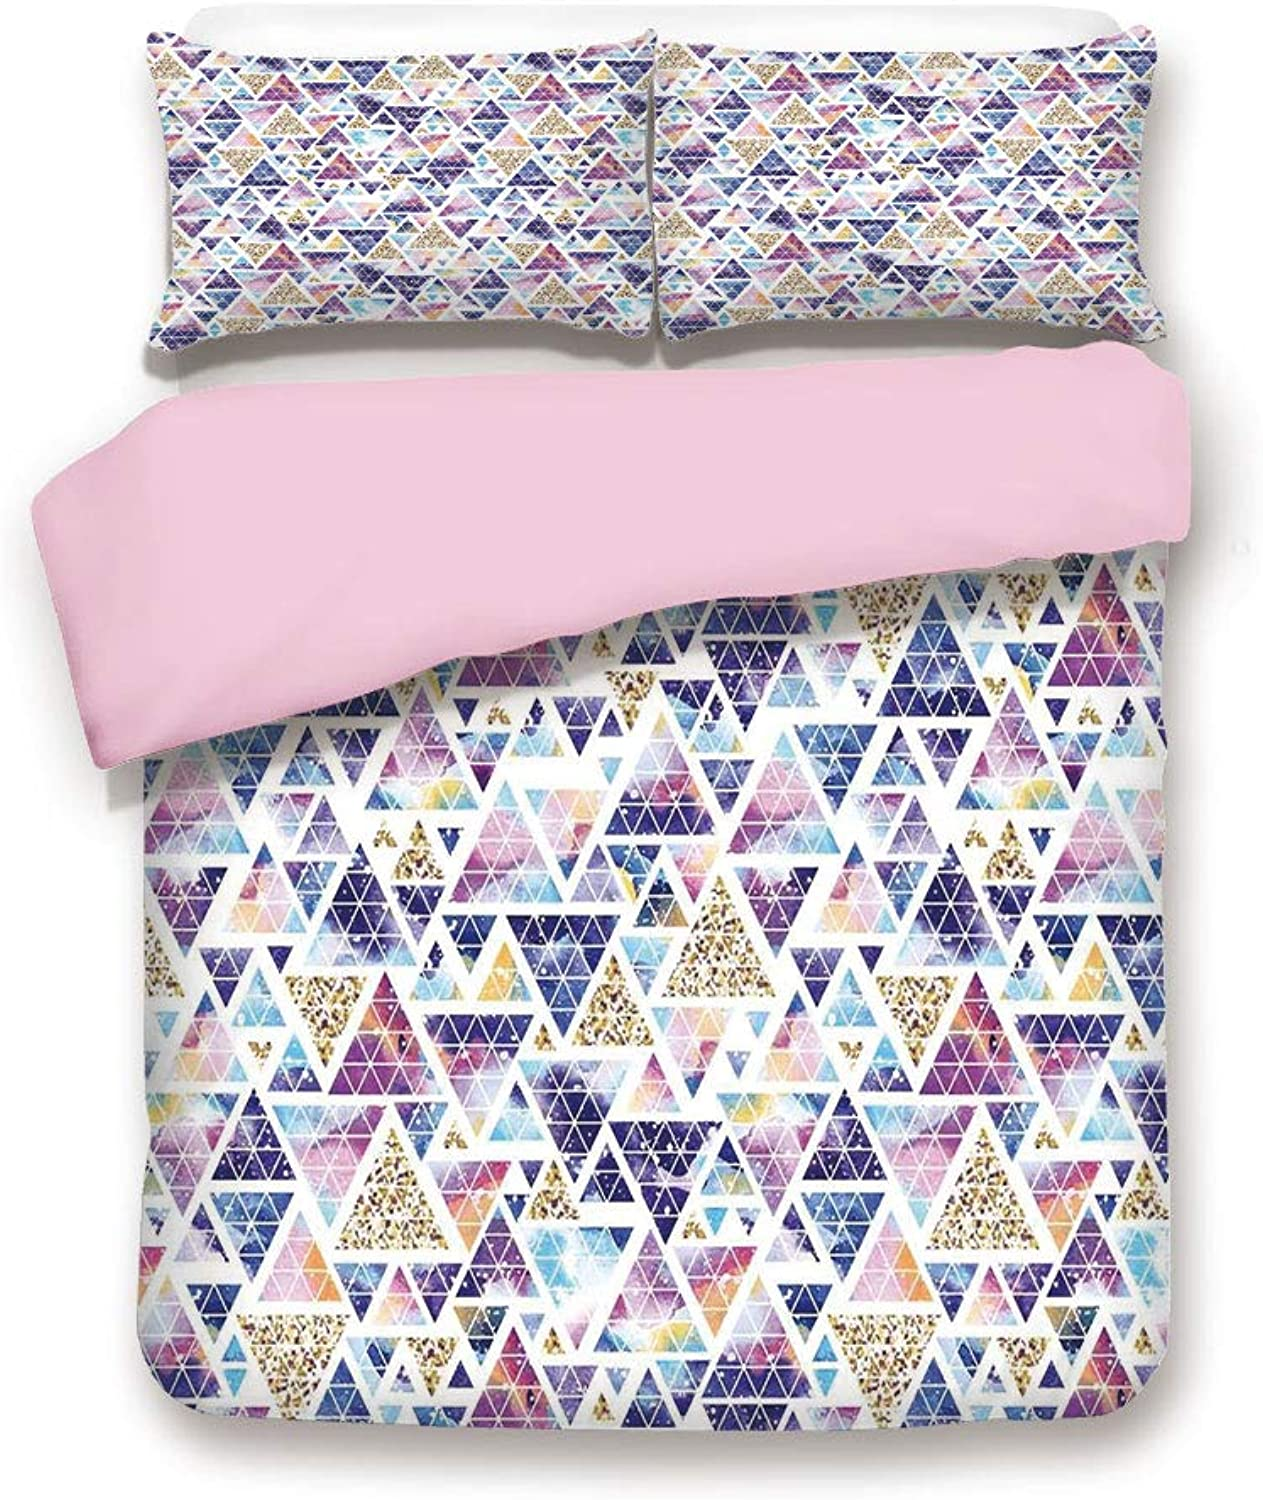 Pink Duvet Cover Set/Full Size/Abstract Triangular Space Design Vintage Universe Pattern Art Neon Like colors/Decorative 3 Piece Bedding Set with 2 Pillow Sham/Best Gift for Girls Women/Multicolor